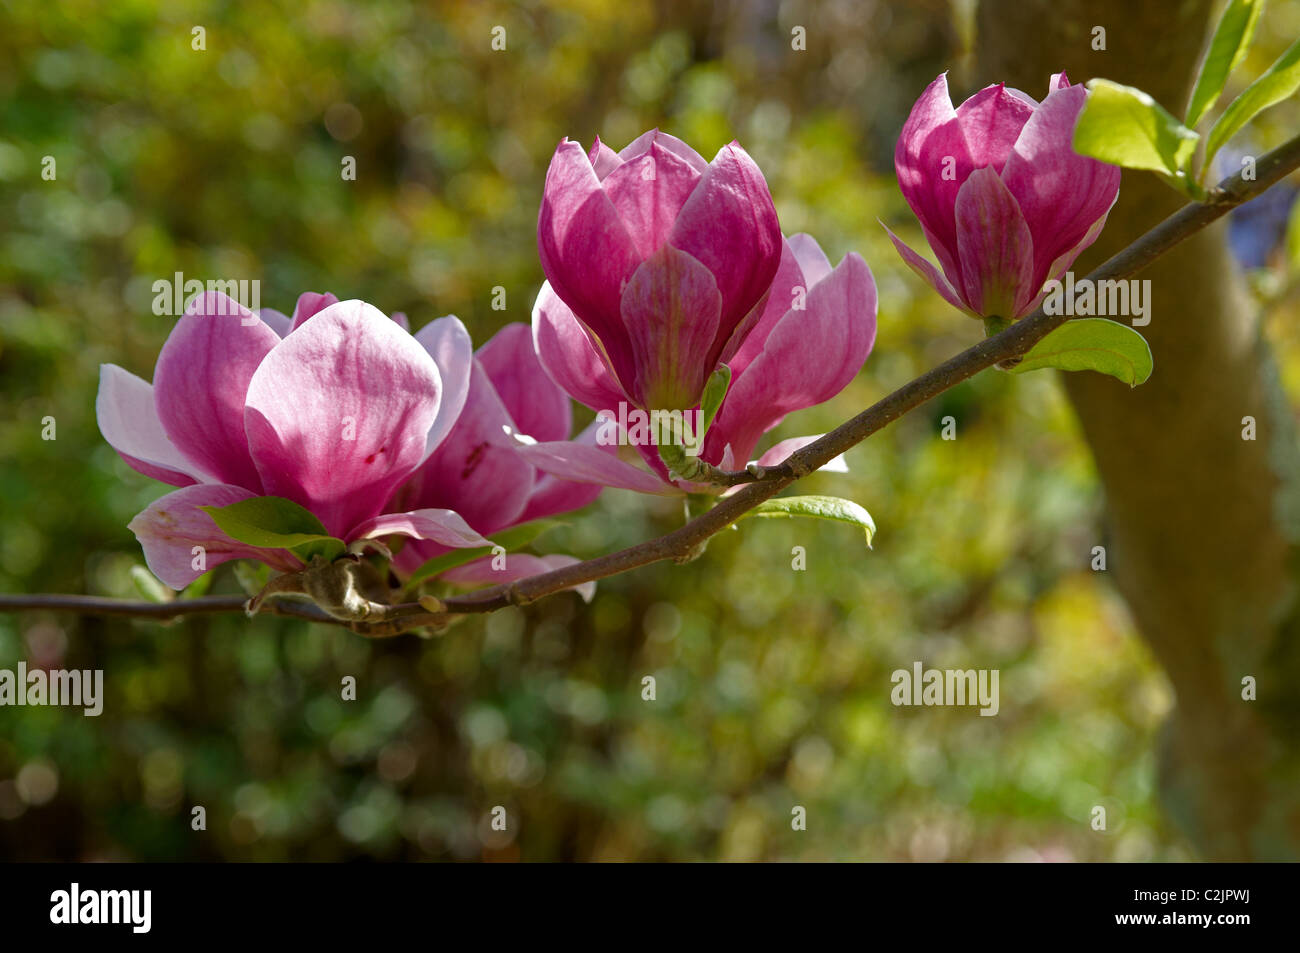 Pink Magnolia Flowers On A Slender Branch Stock Photo 36063150 Alamy